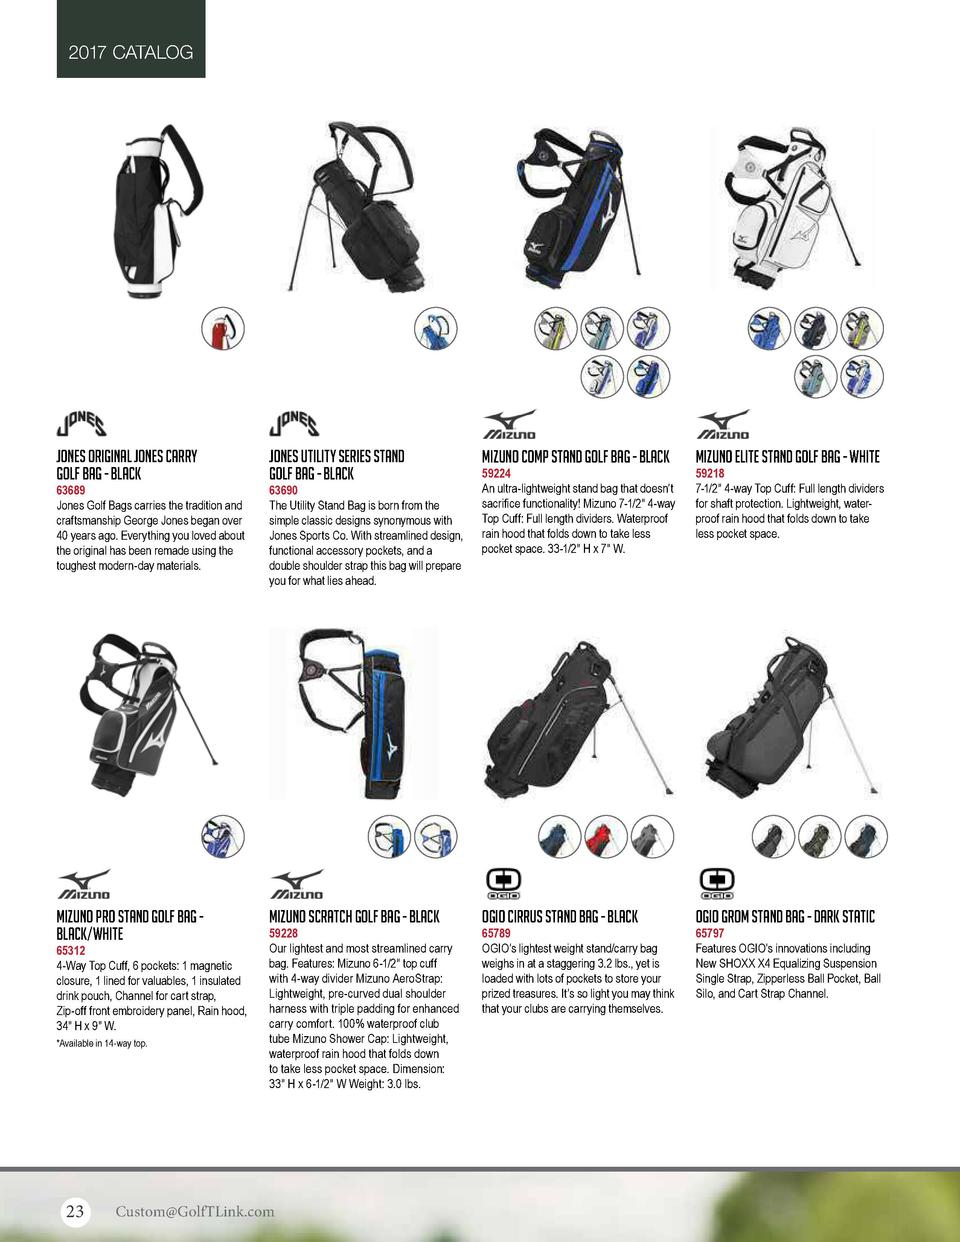 2017 CATALOG  Jones Original Jones Carry Golf Bag - Black  Jones Utility Series Stand Golf Bag - Black  Mizuno Comp Stand ...